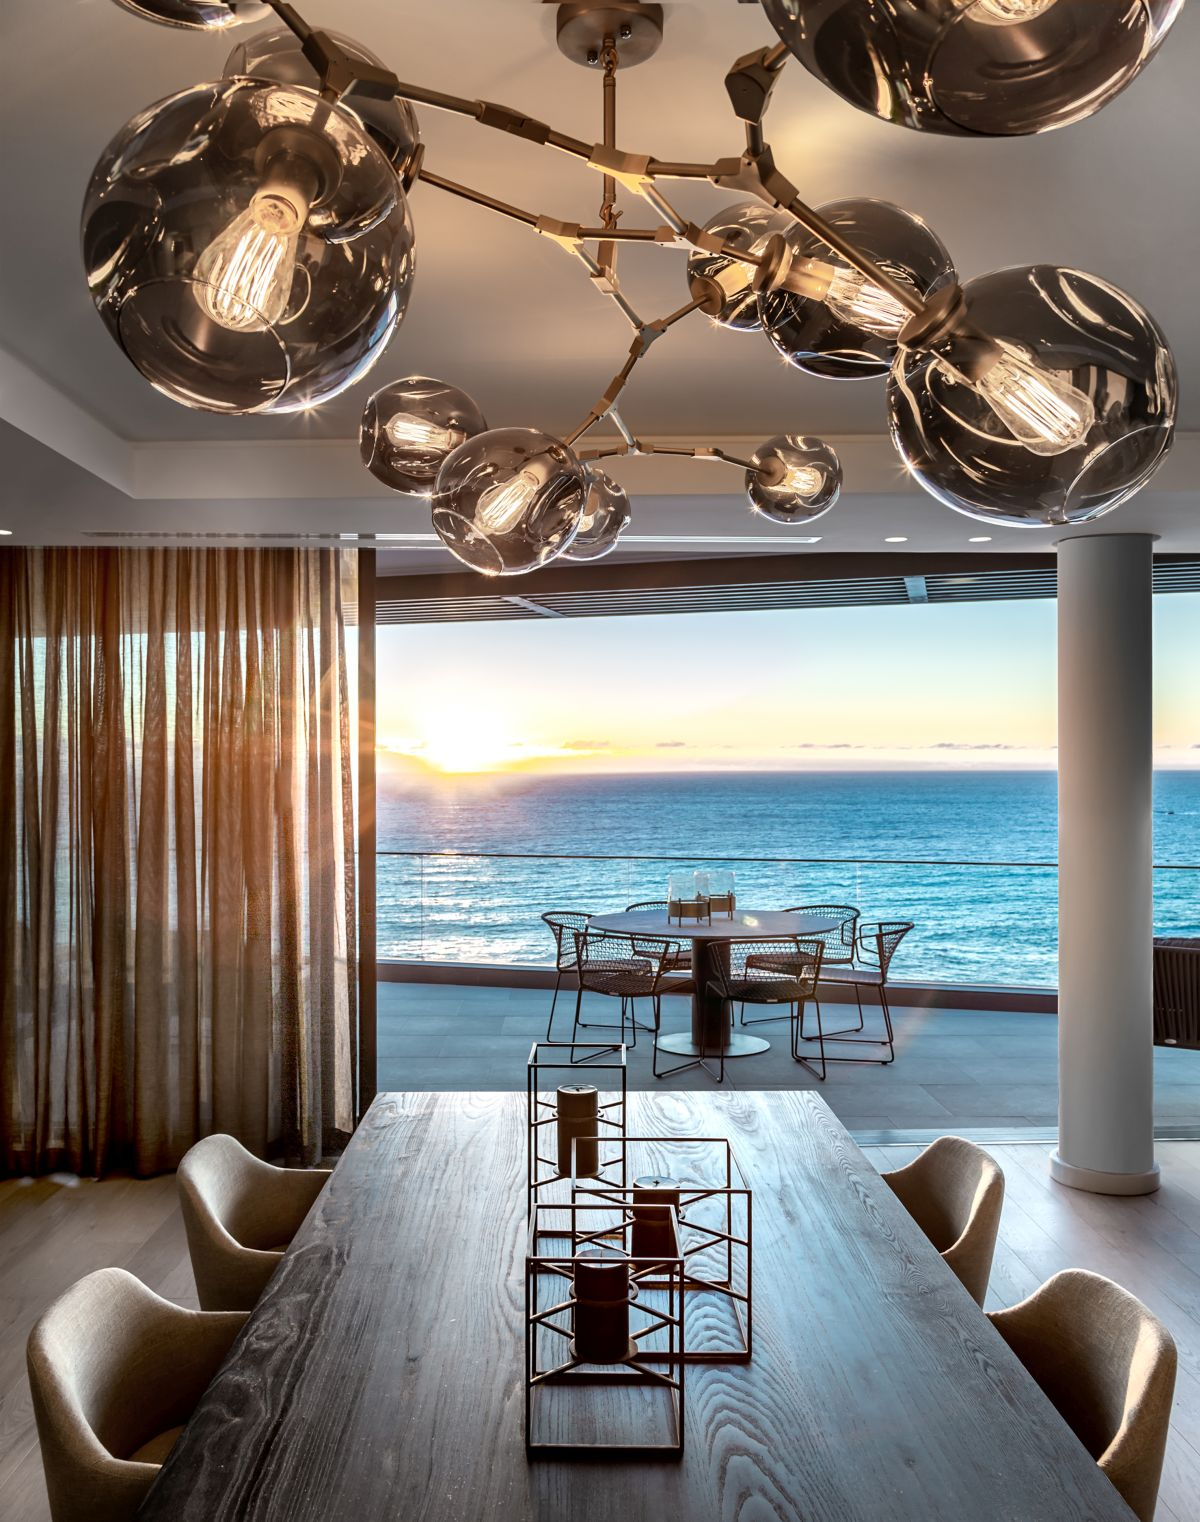 The terrace overlooks the Atlantic Ocean, offering panoramic views and letting in lots of sunlight